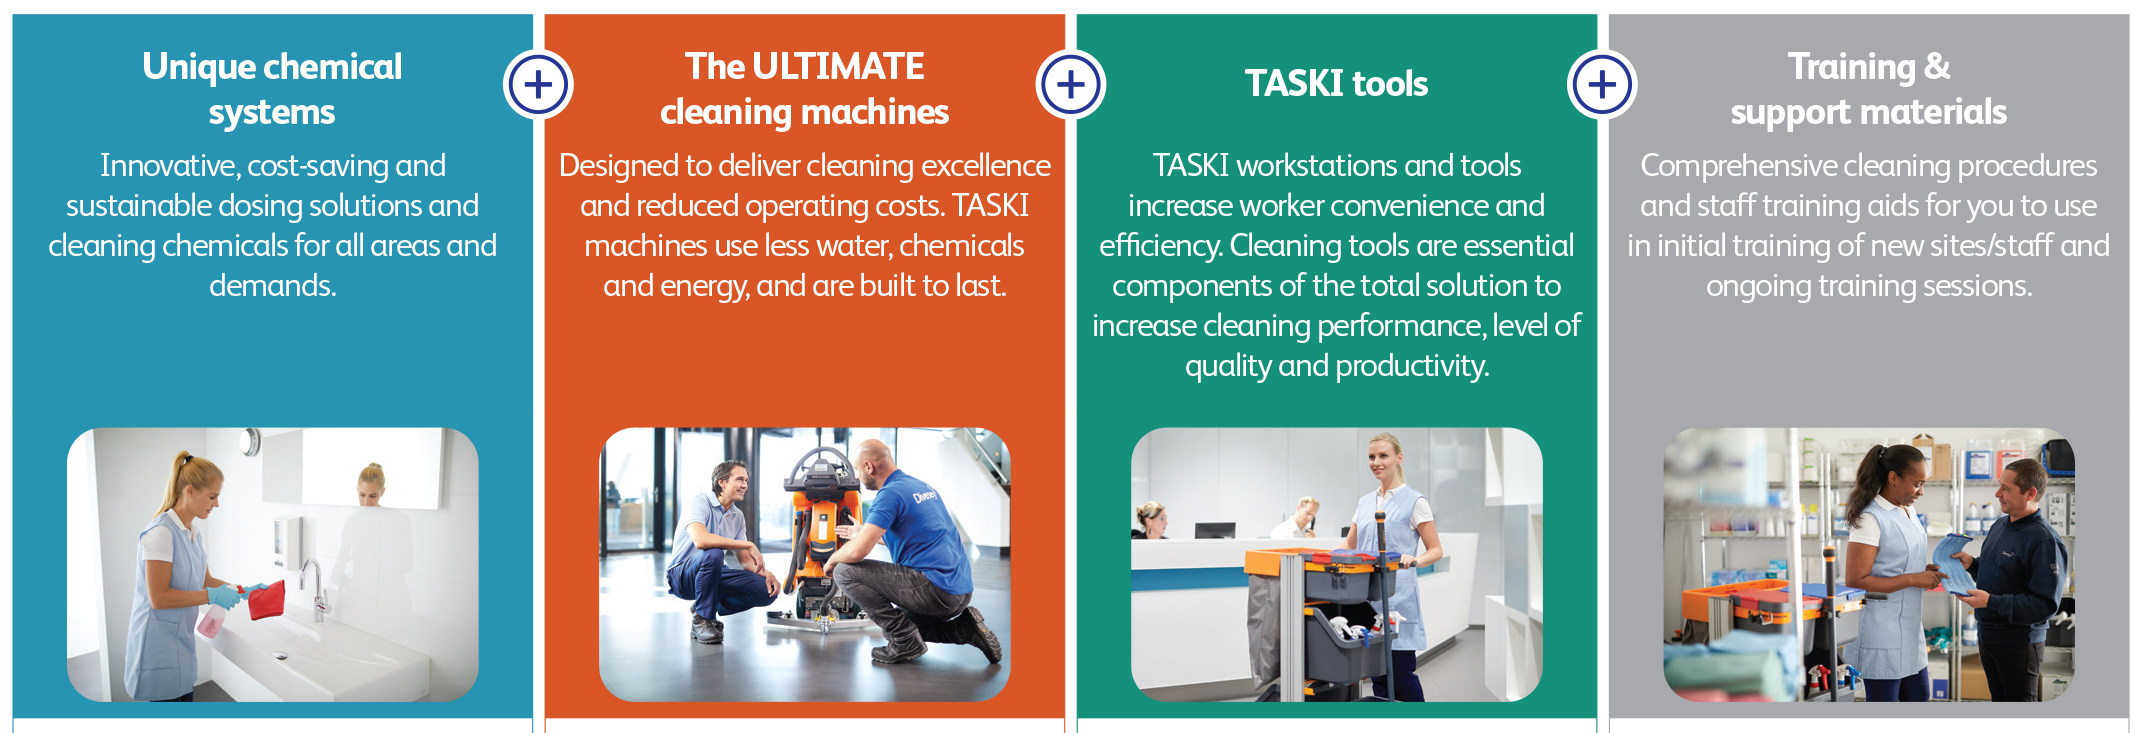 Ready To Reopen, Unique cleaning chemical systems, TASKI machines, Taski Tools, Training and support materials